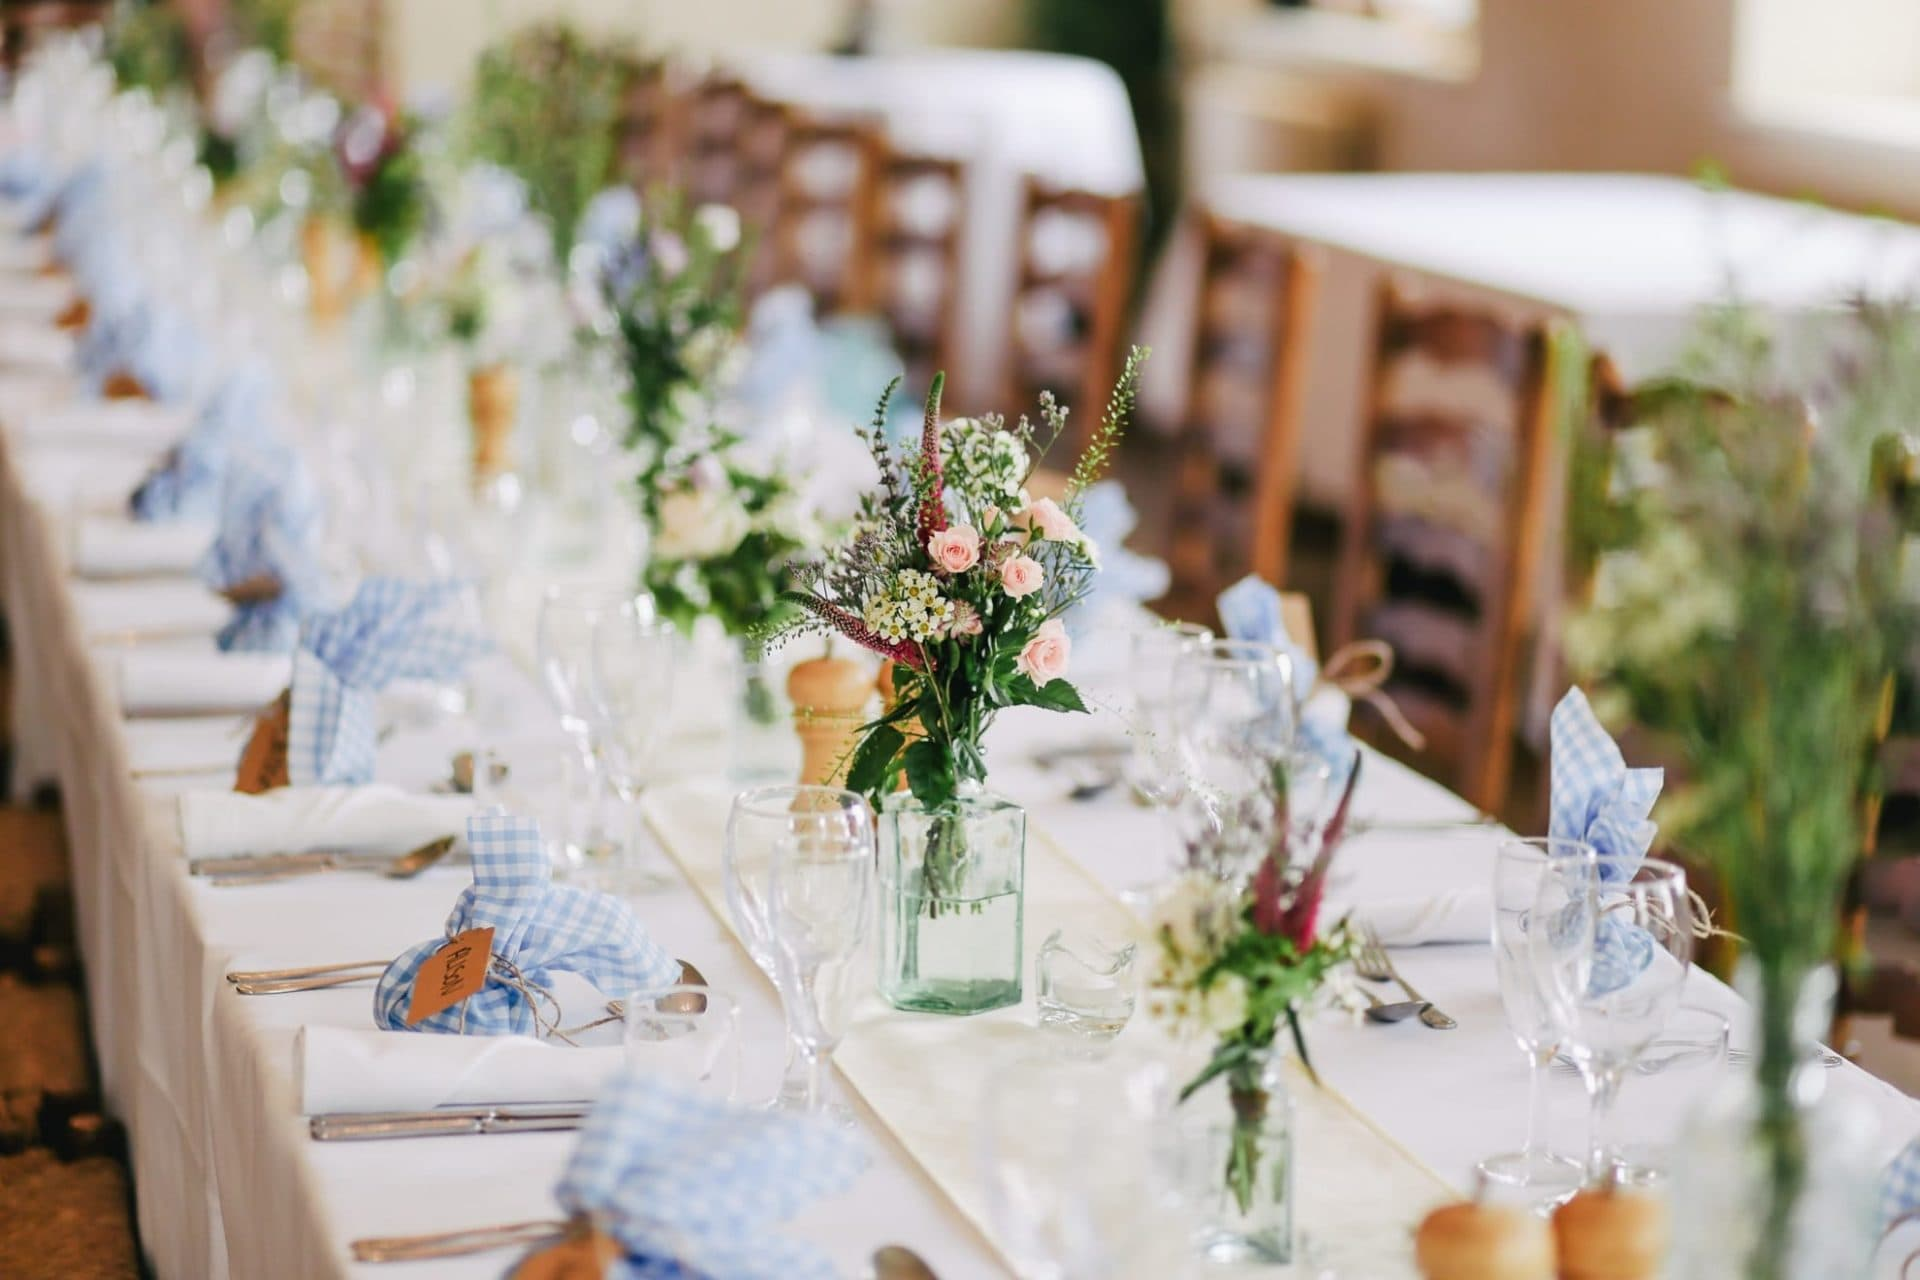 The Zetter Townhouse Marylebone Table Setting For A Wedding